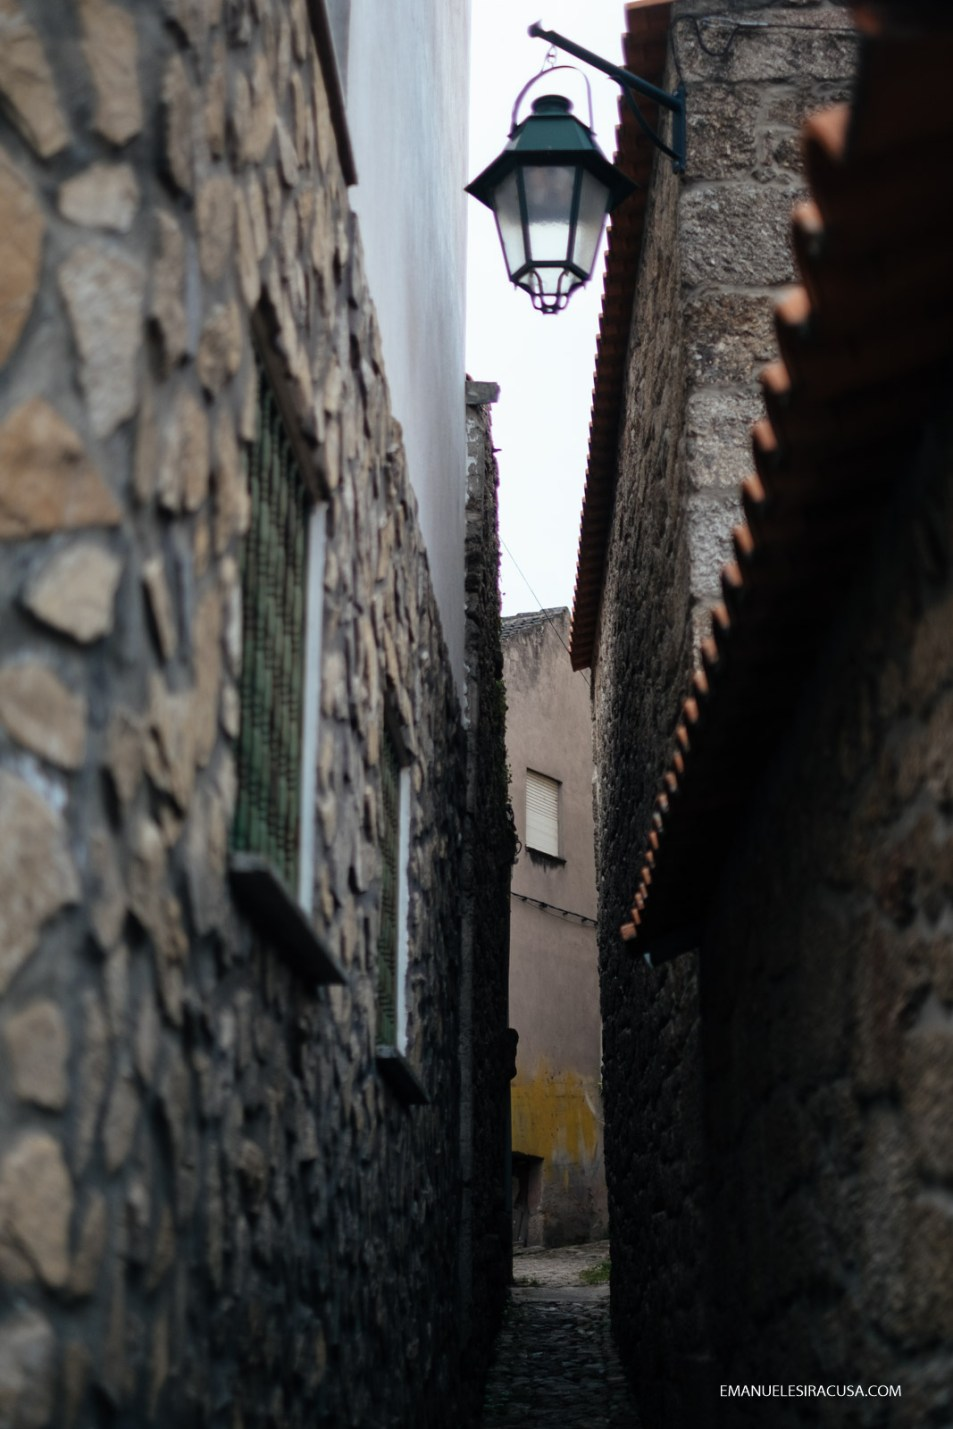 A narrow lane in Belmonte, 2016 - photo by Emanuele Siracusa for Nelson Carvalheiro Travel & Food and Centro de Portugal